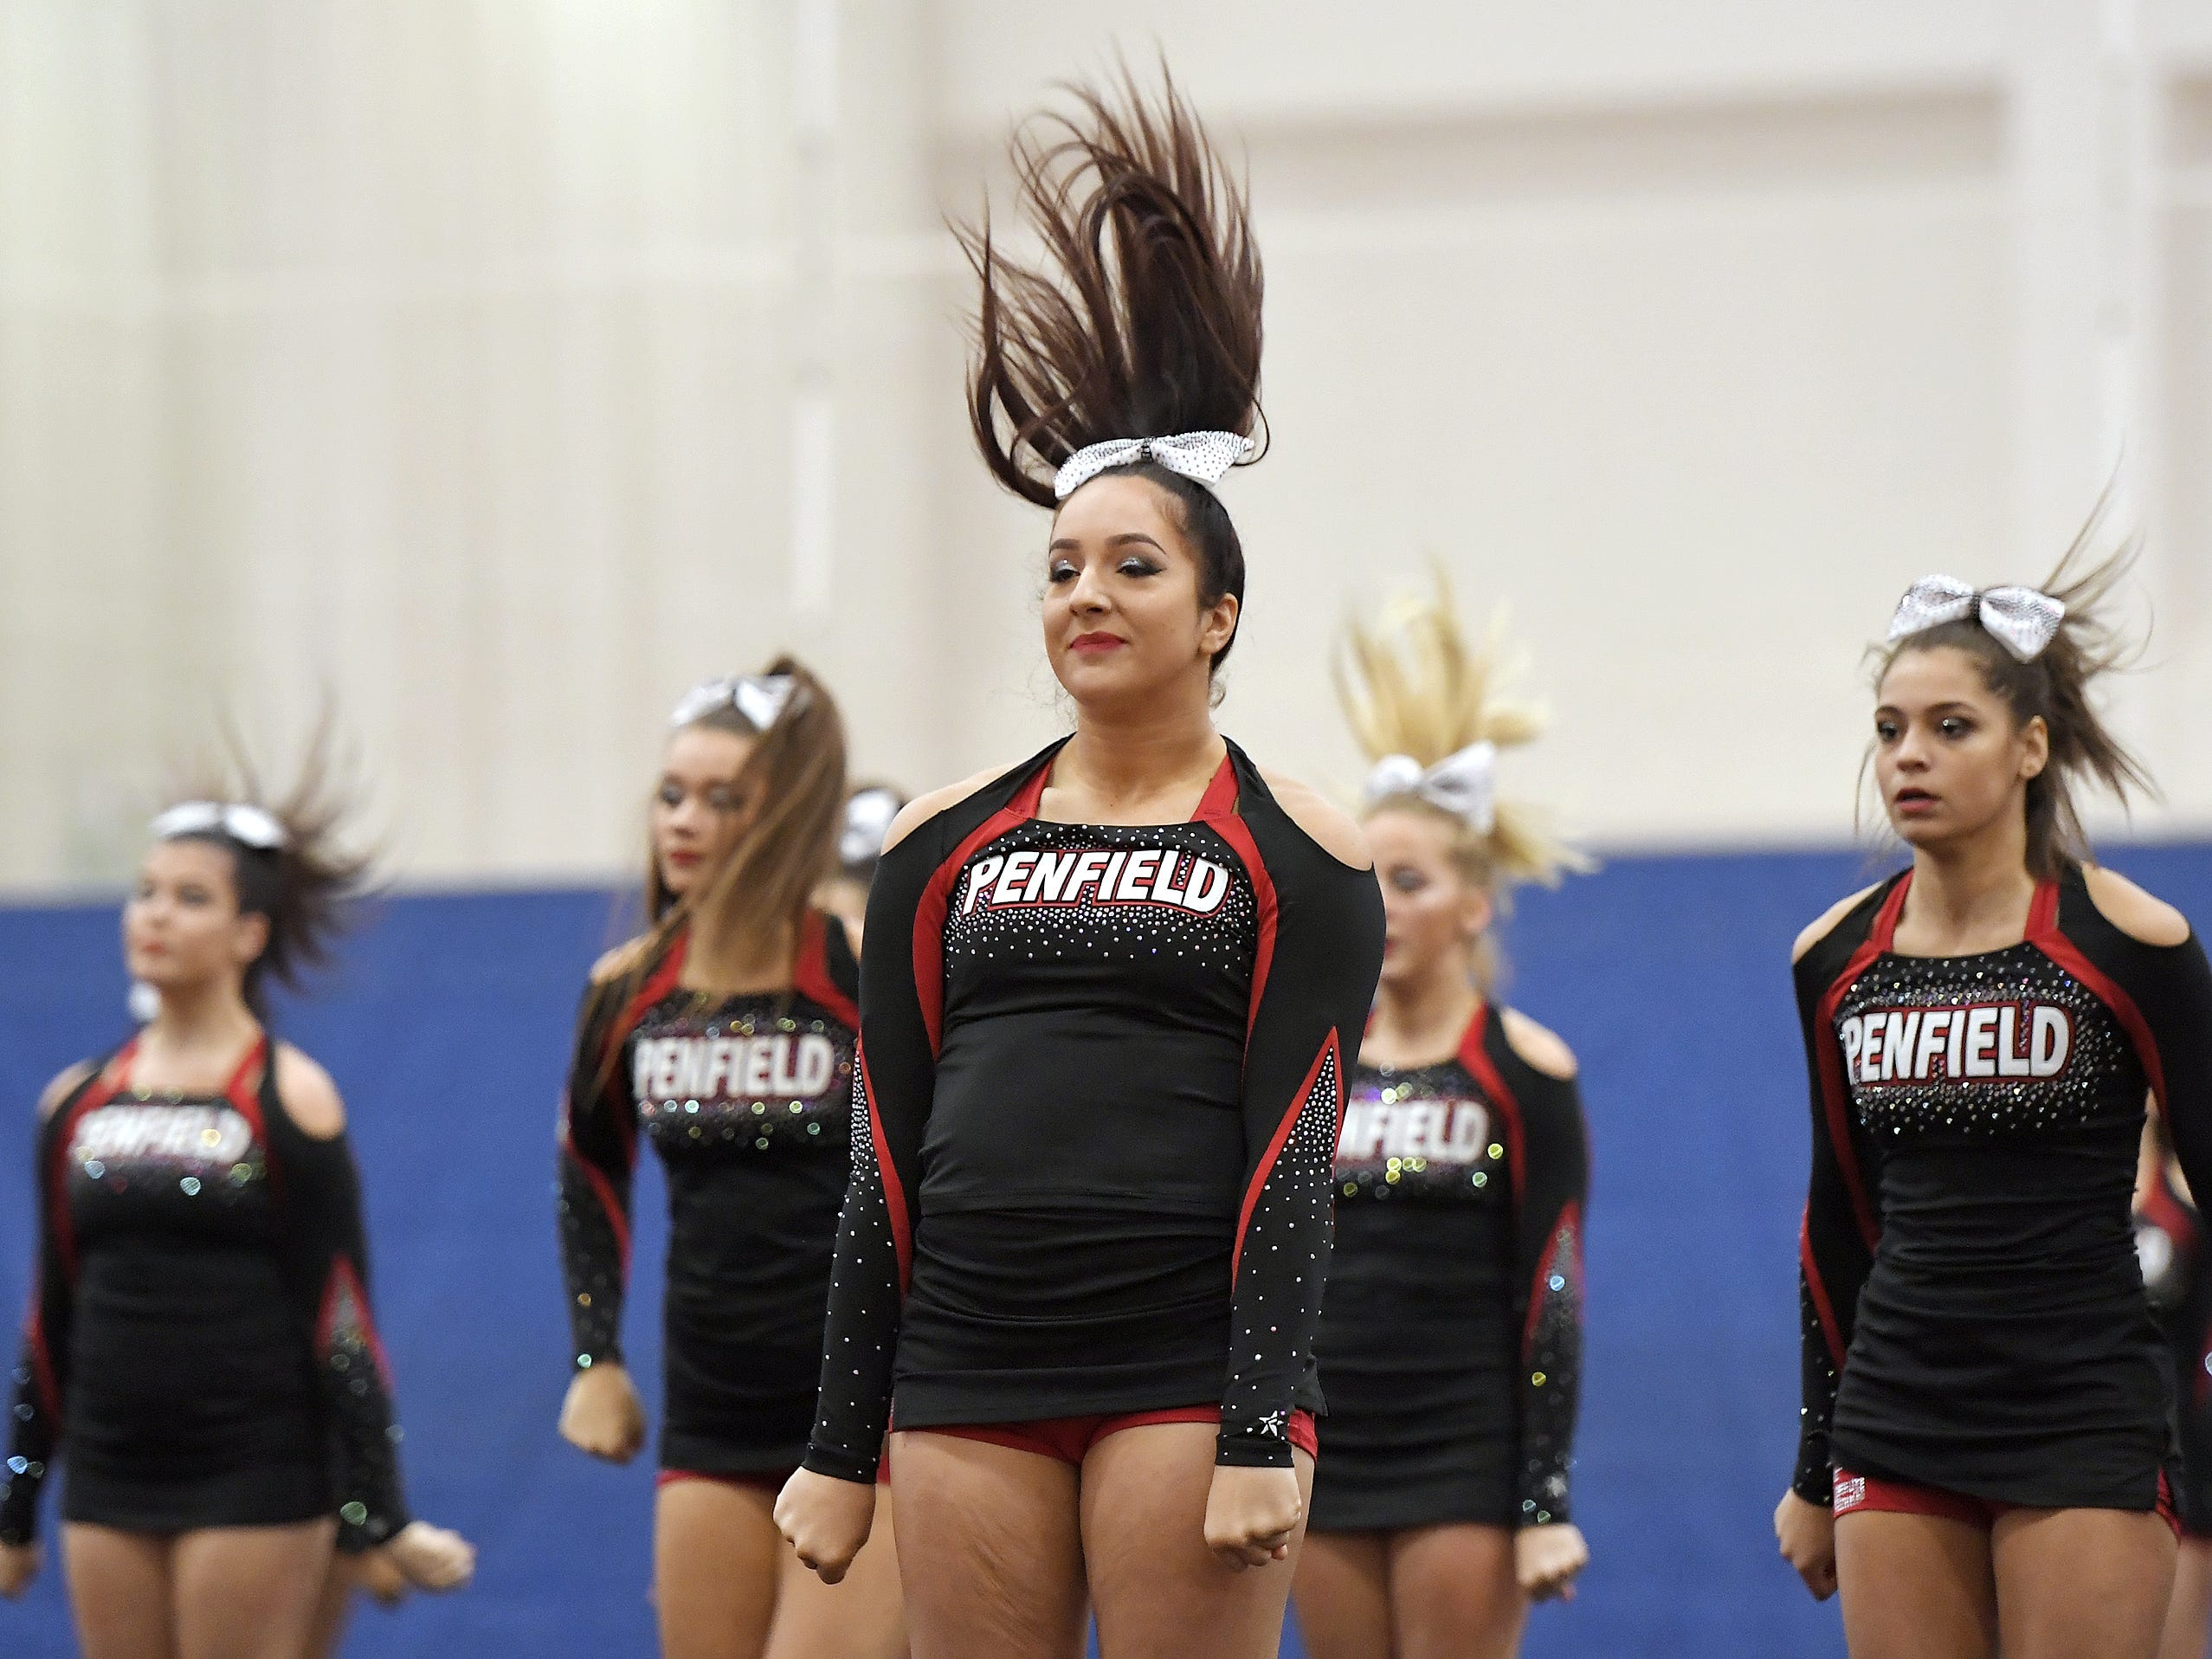 Penfield cheerleaders perform their routine during the Section V Fall Cheerleading Championships at RIT, Saturday, Oct. 27, 2018.